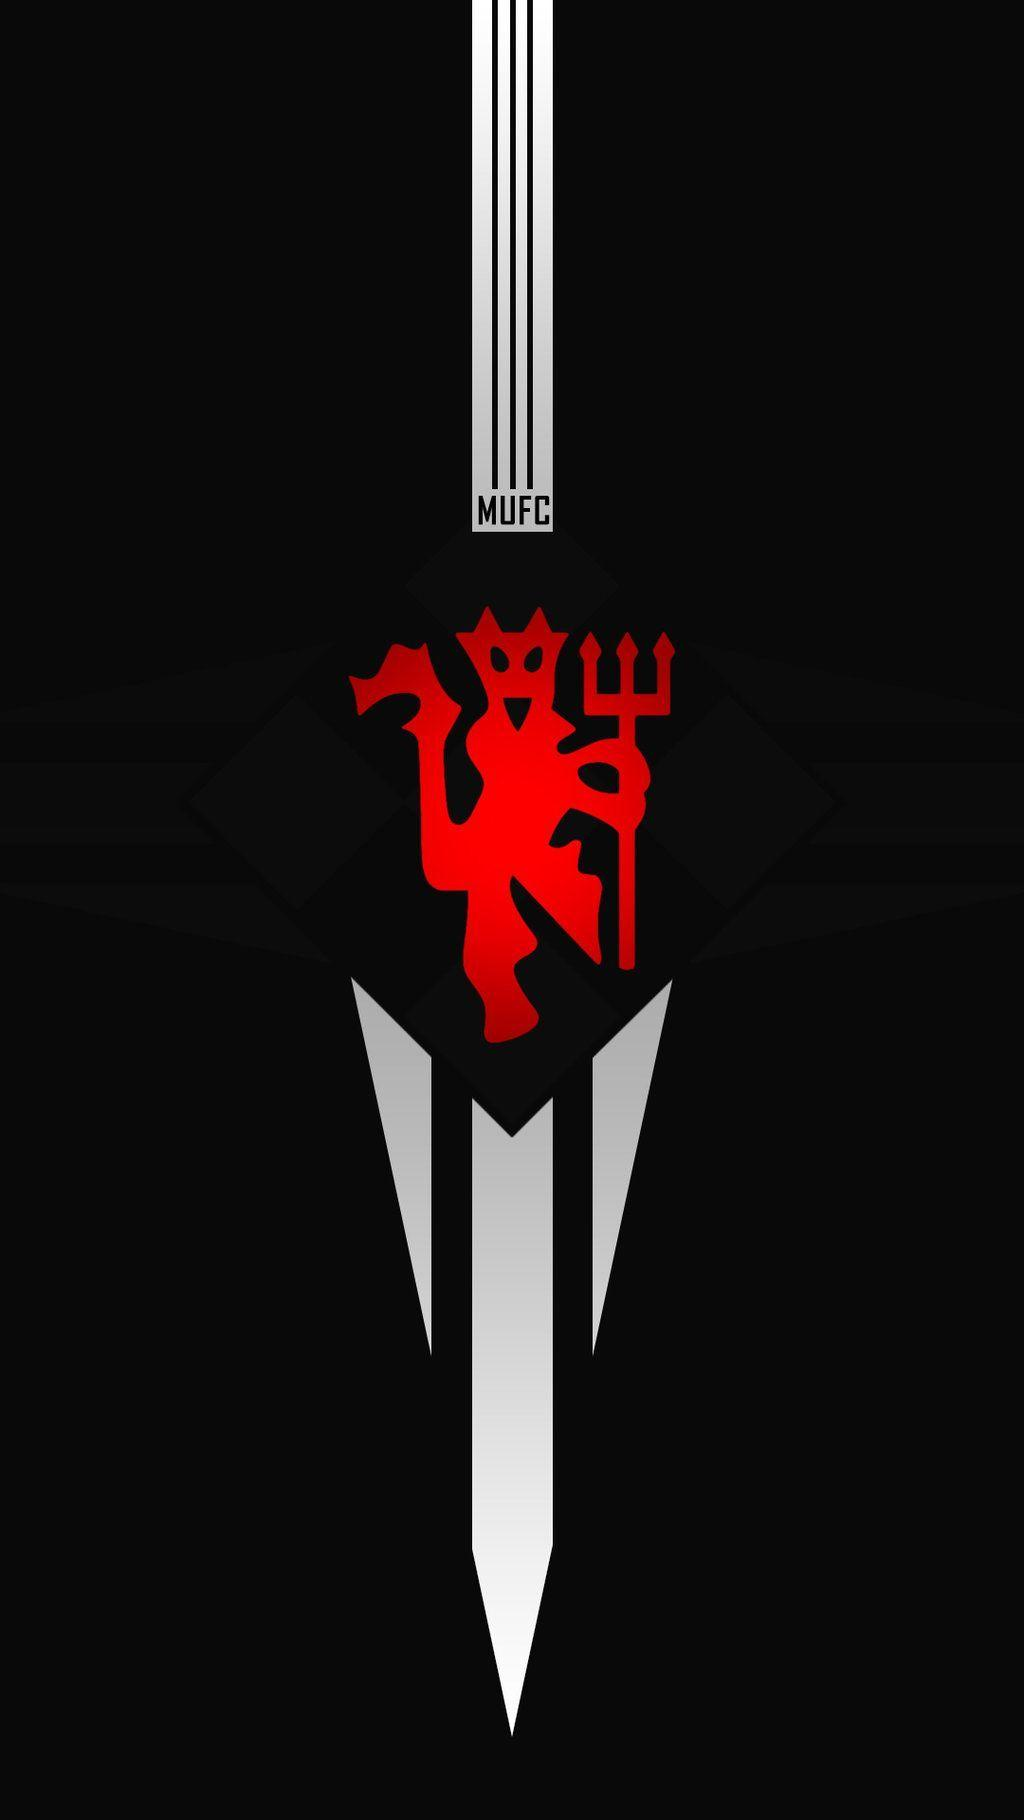 Iphone Jersey Third Manchester United 2019 2020 Wallpapers Wallpaper Cave